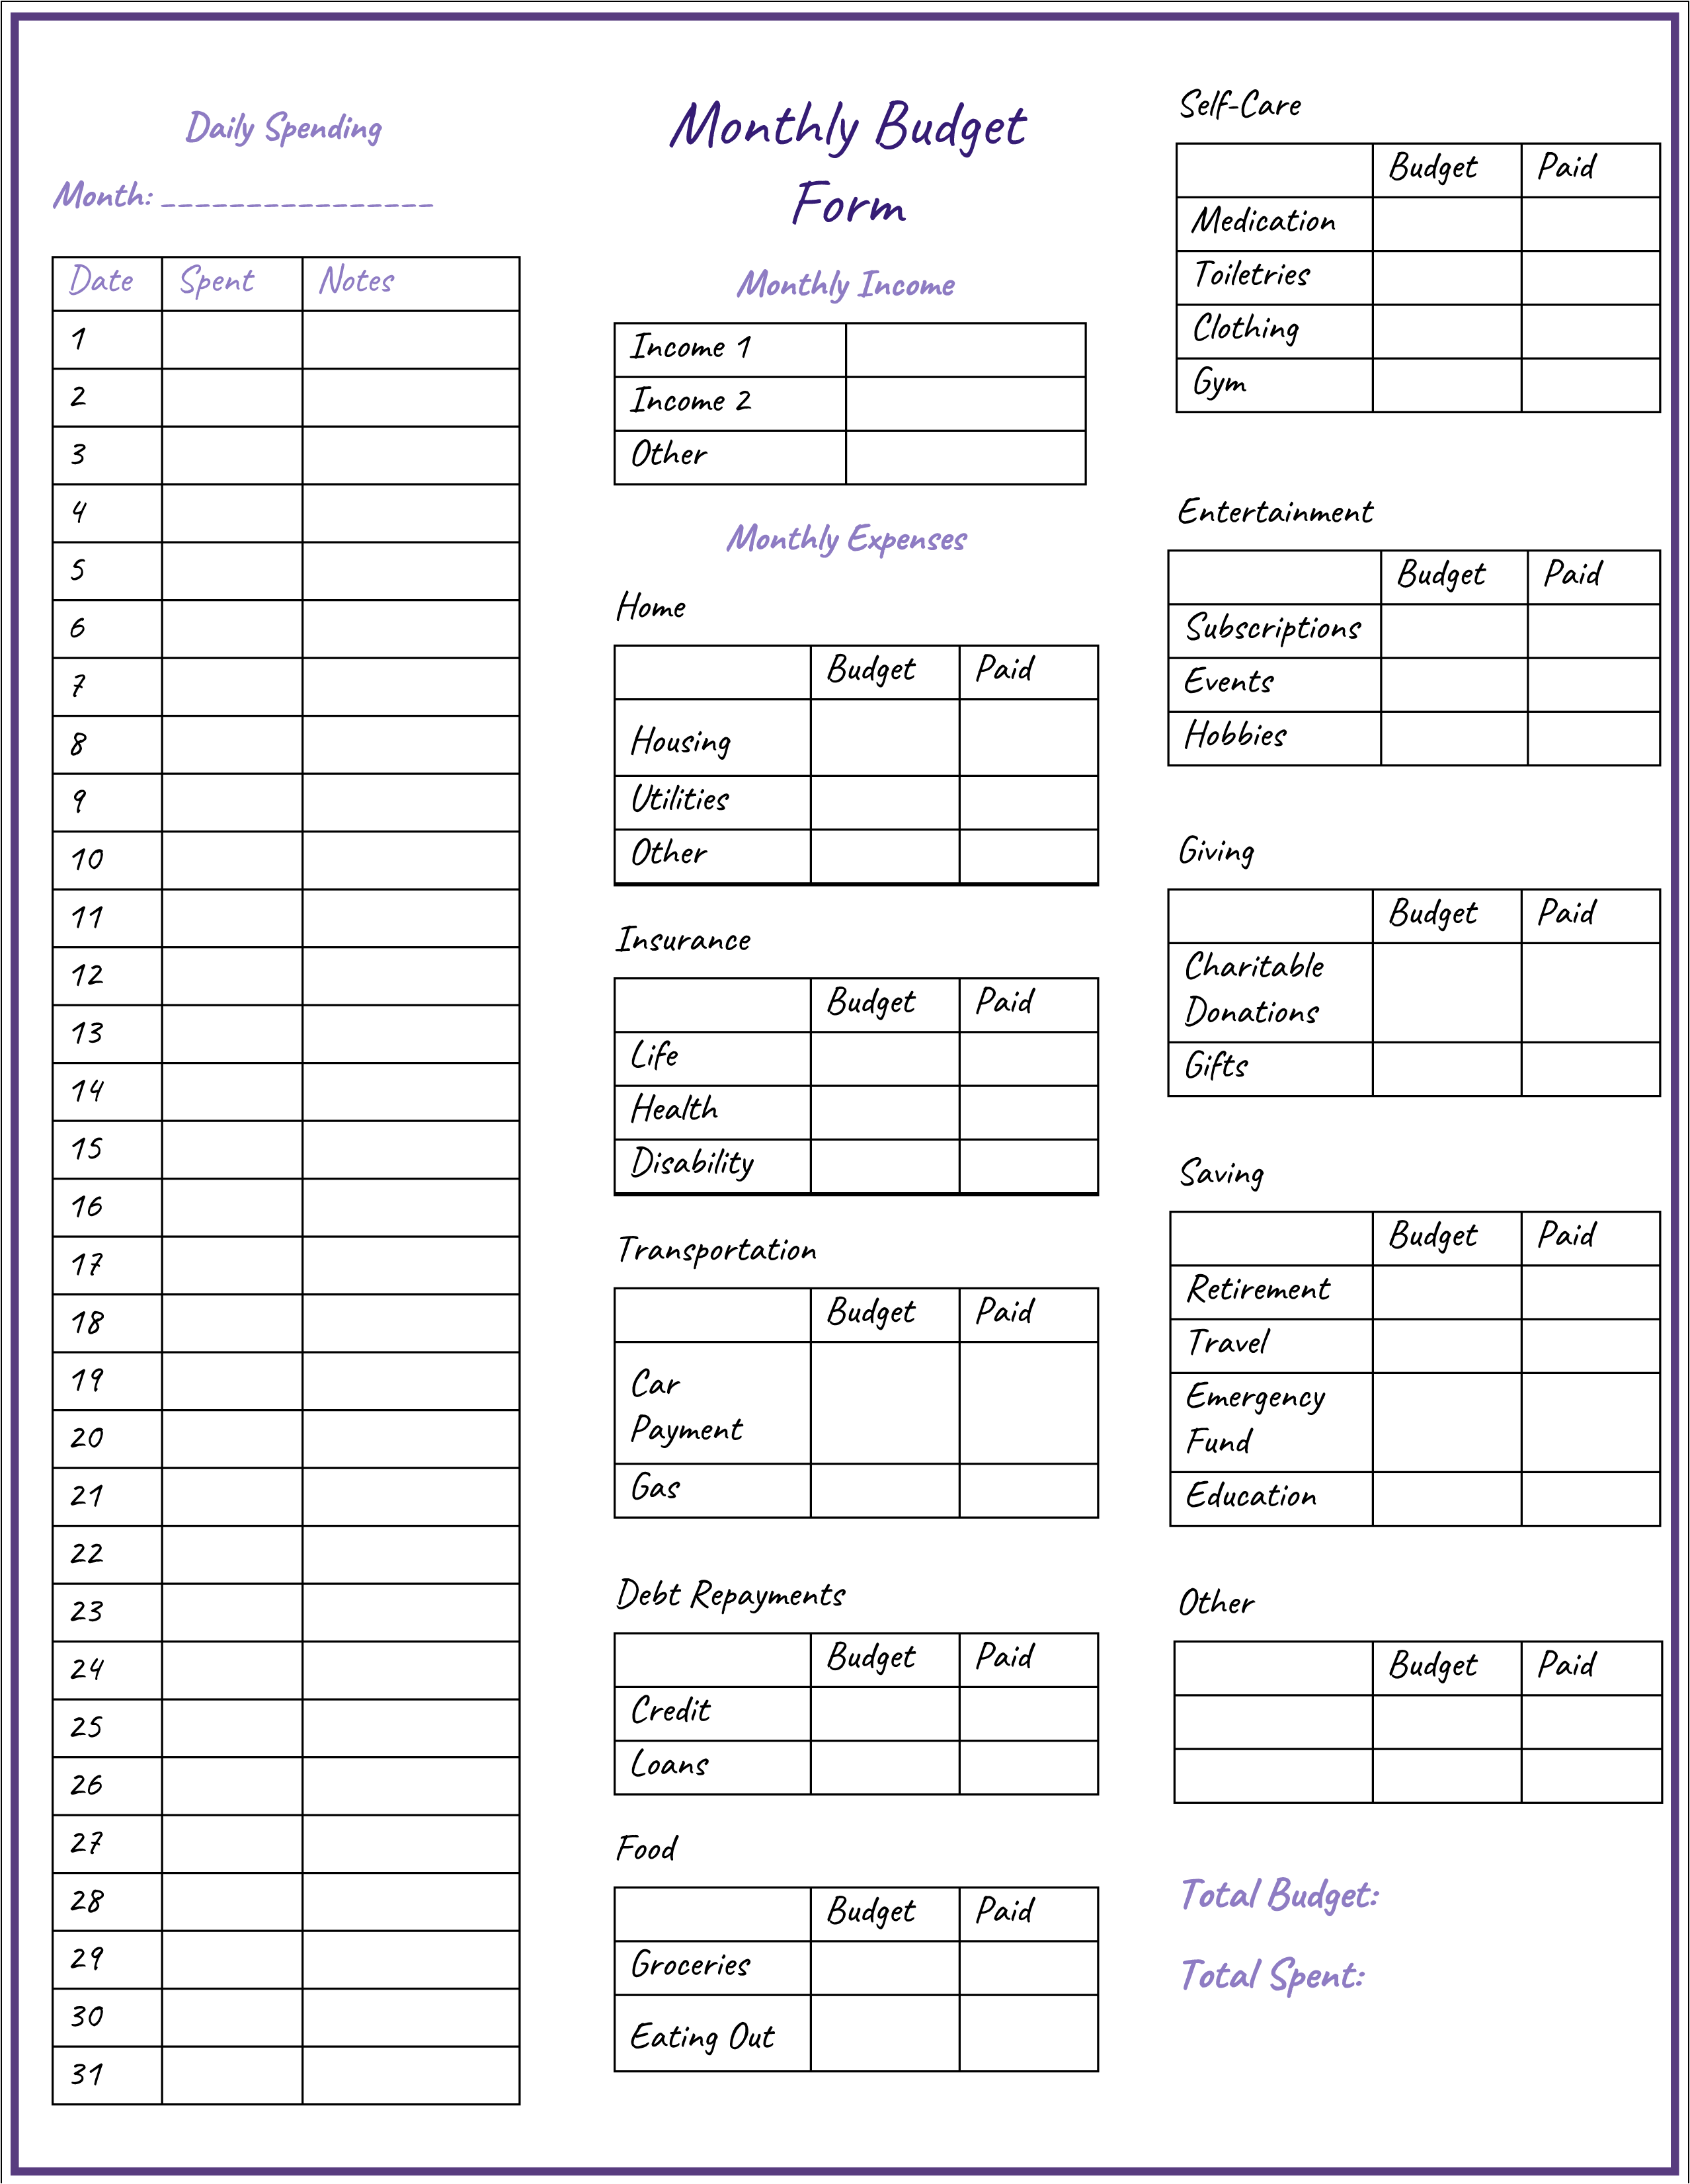 3 Monthly Budget Form Templates Printable In